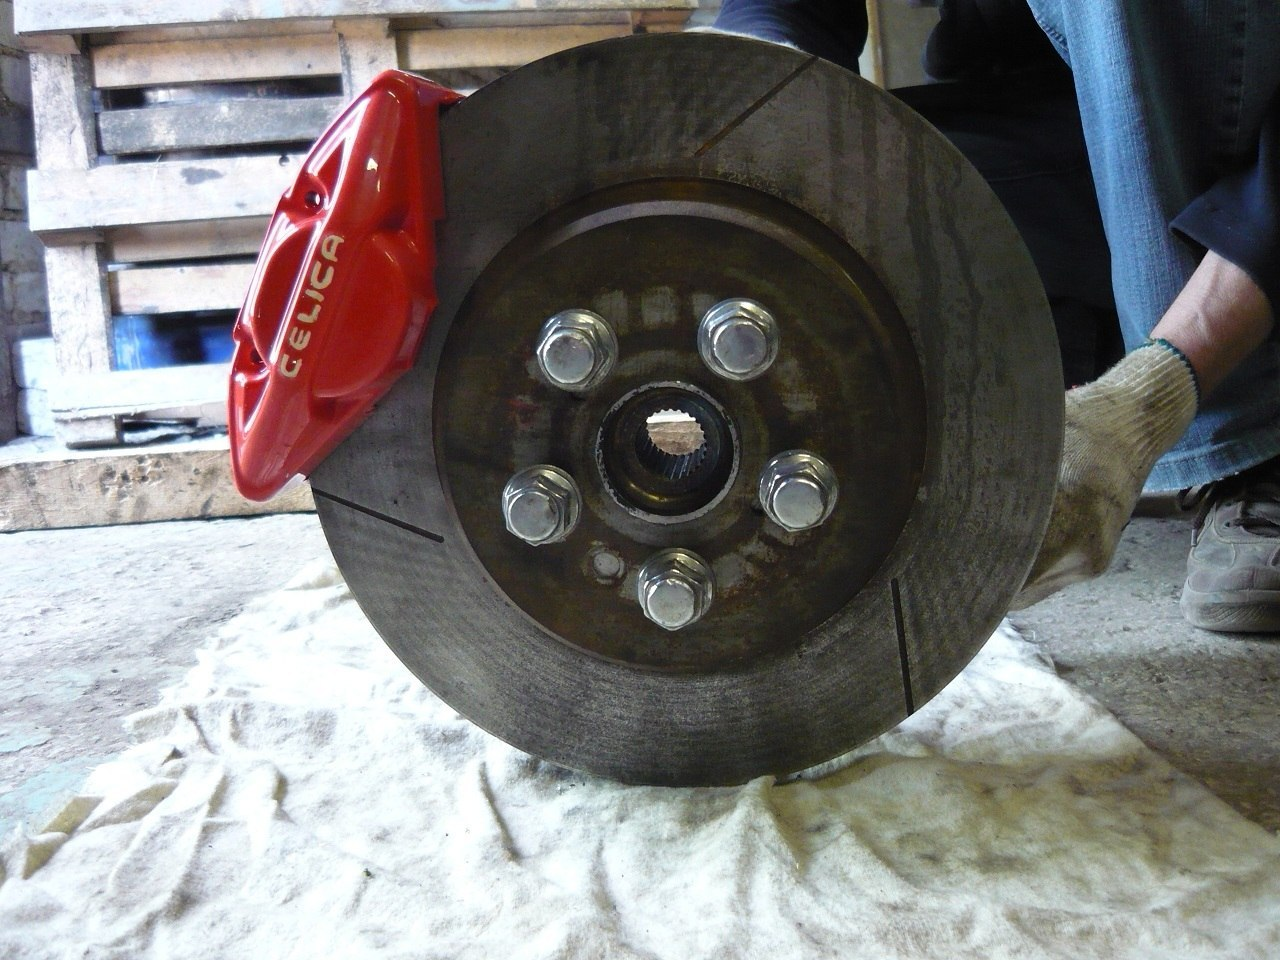 Gt Four Brake On Zzt231 Archive Page 2 Forum Wilwood Disc Kitfront Stock Replacementhonda262mm Rotors